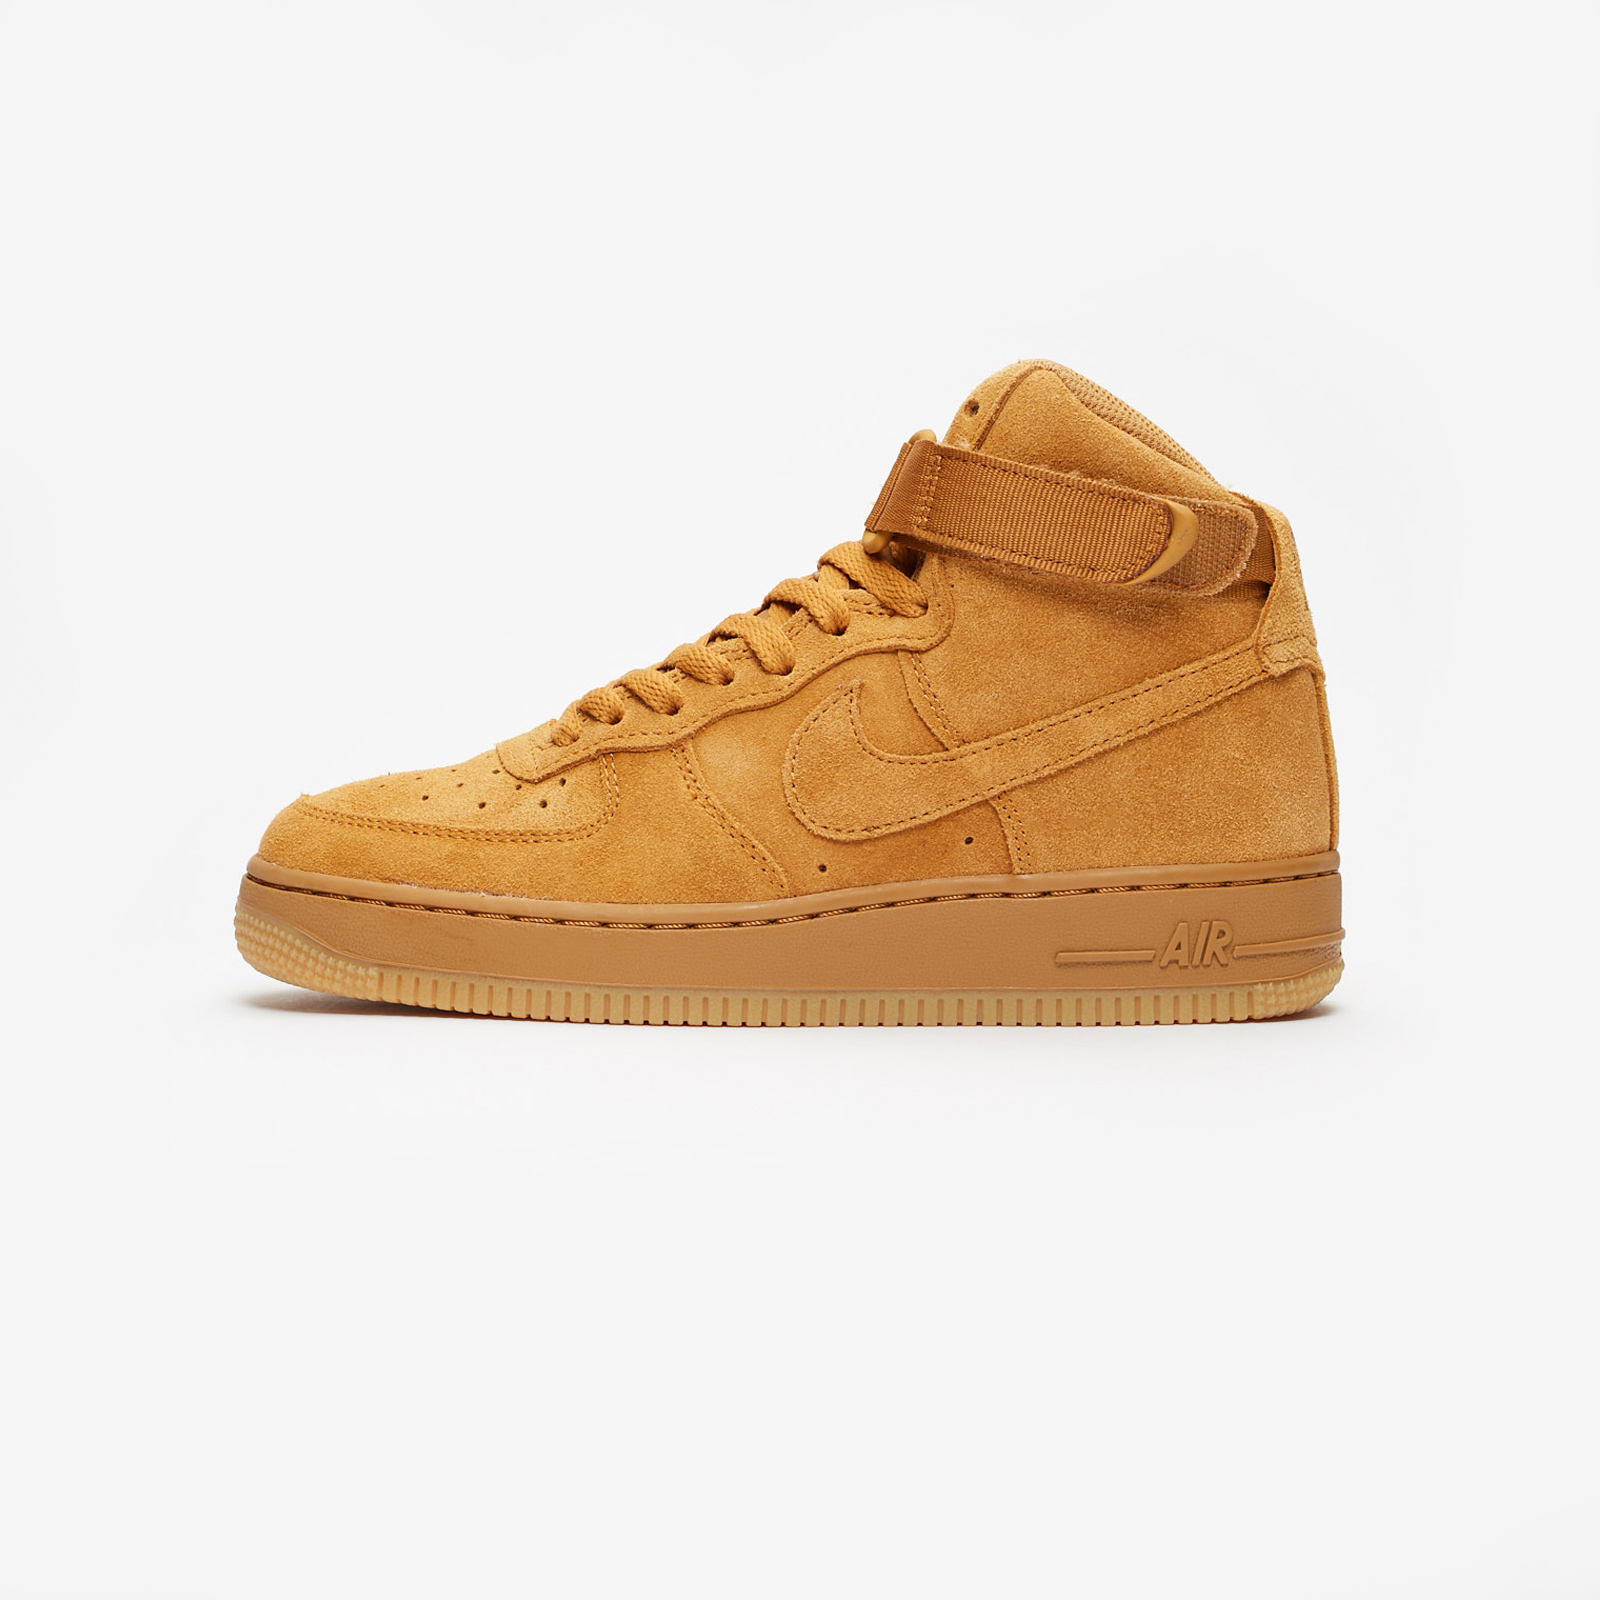 new arrival 267b7 c67d0 Nike Air Force 1 High LV8 (GS) - 807617-701 - Sneakersnstuff   sneakers    streetwear online since 1999